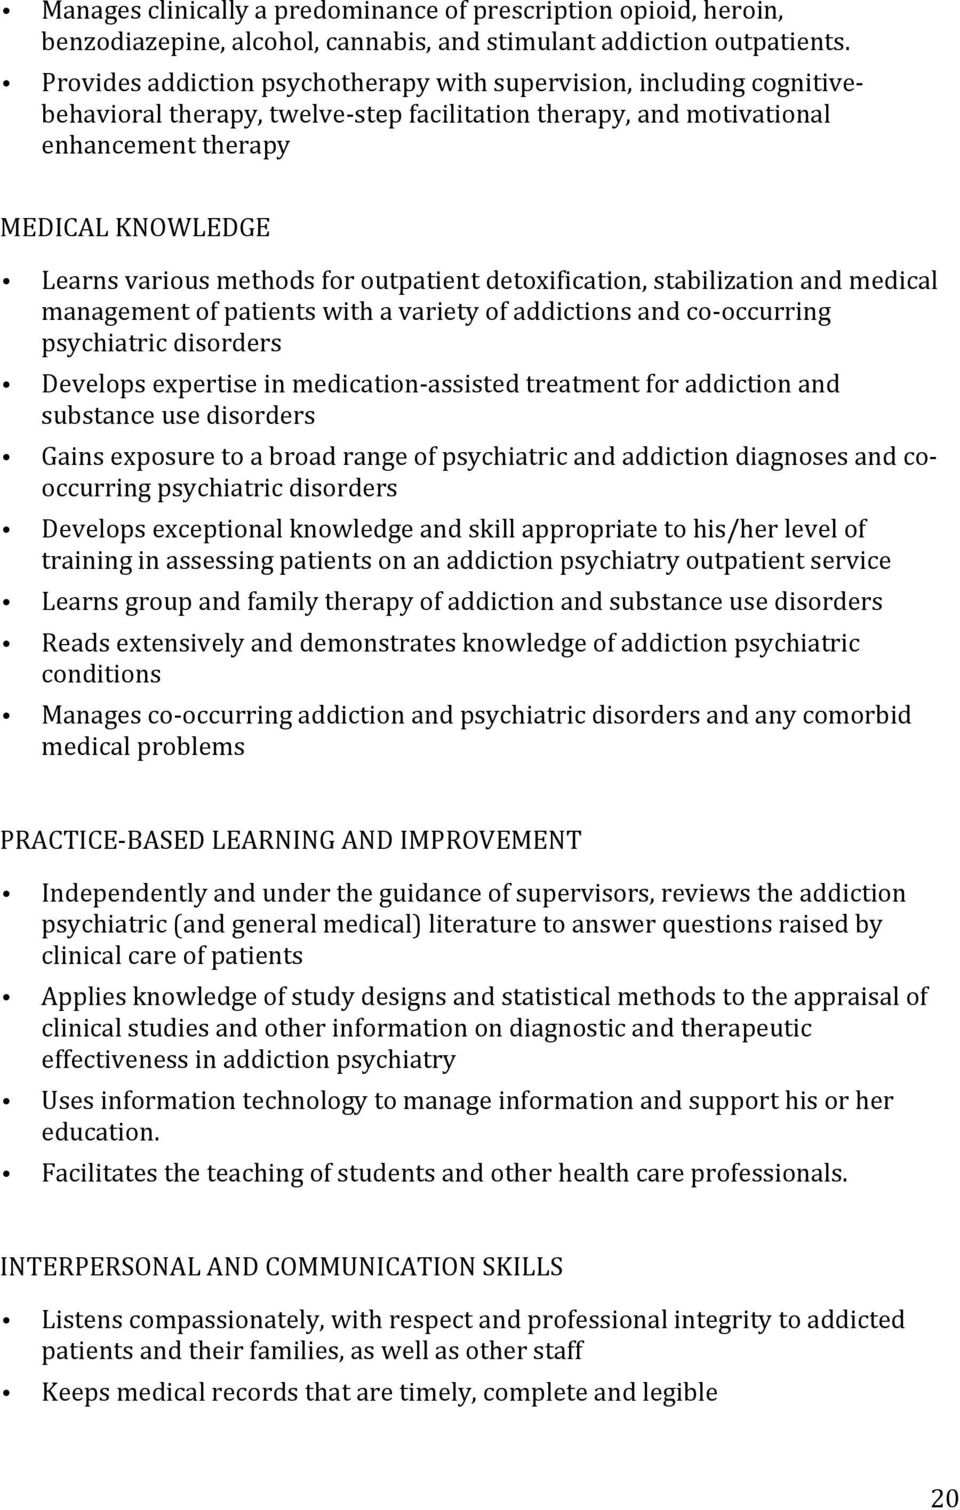 methods for outpatient detoxification, stabilization and medical management of patients with a variety of addictions and co- occurring psychiatric disorders Develops expertise in medication- assisted